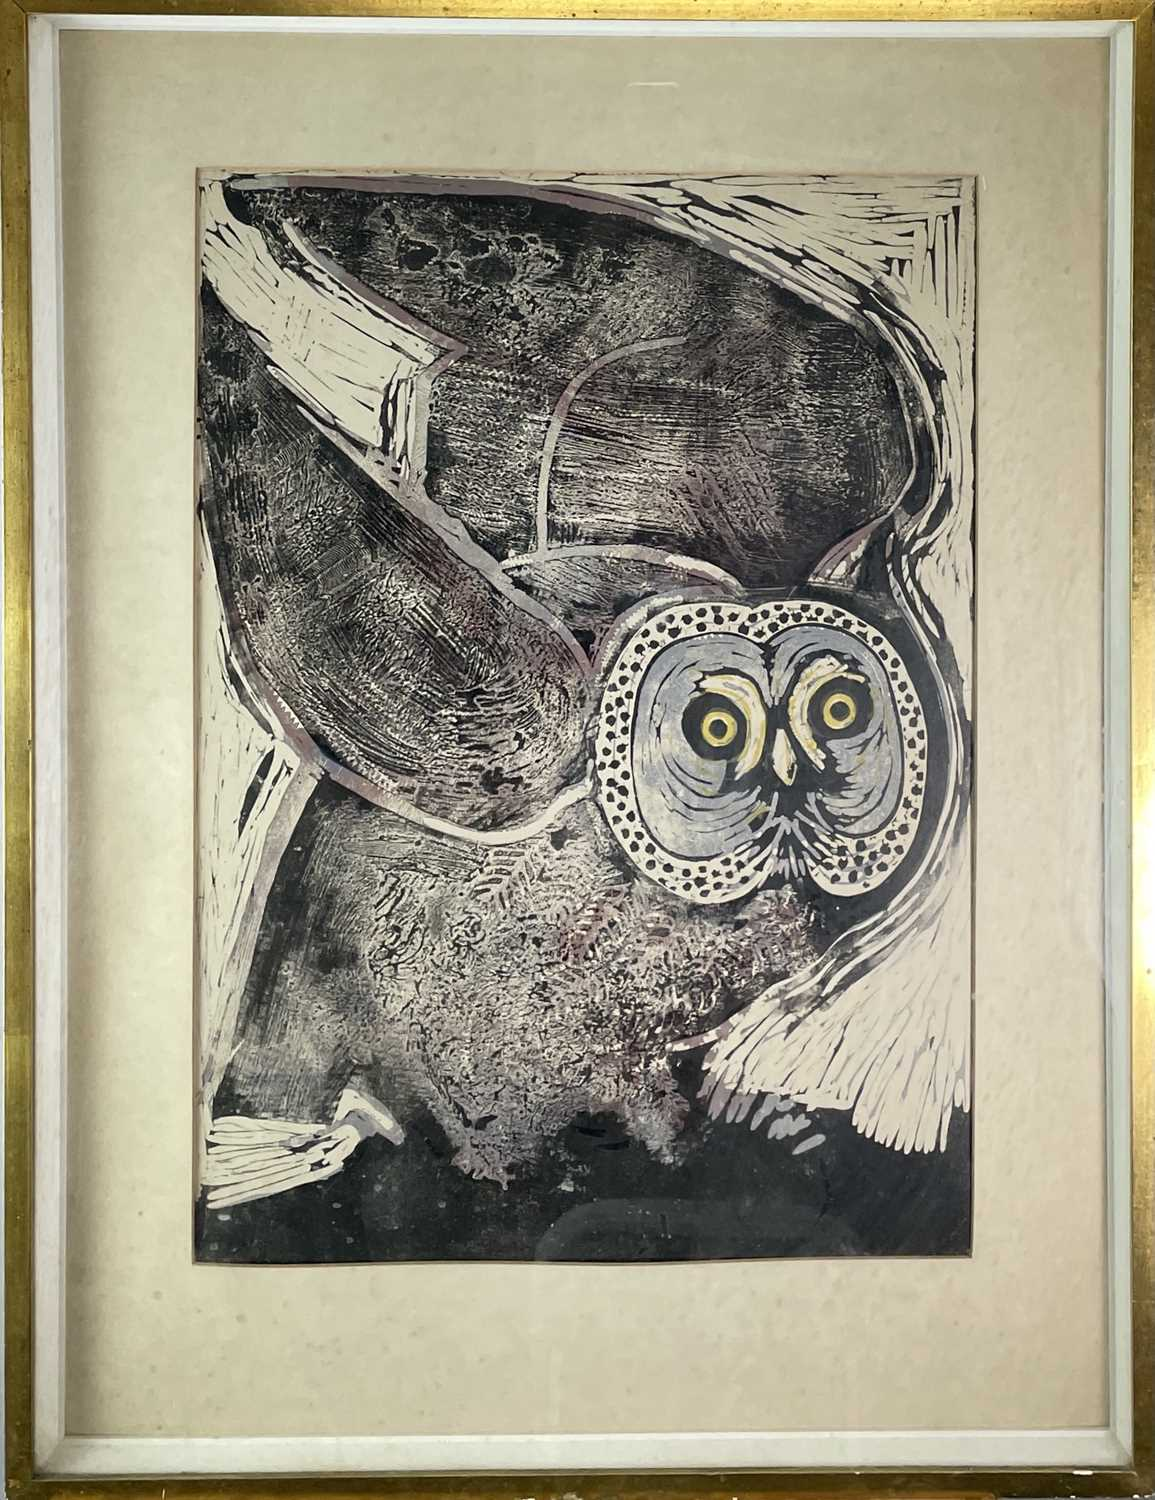 Contemporary British School Owl Lithograph 70x49cm sight size - Image 3 of 3